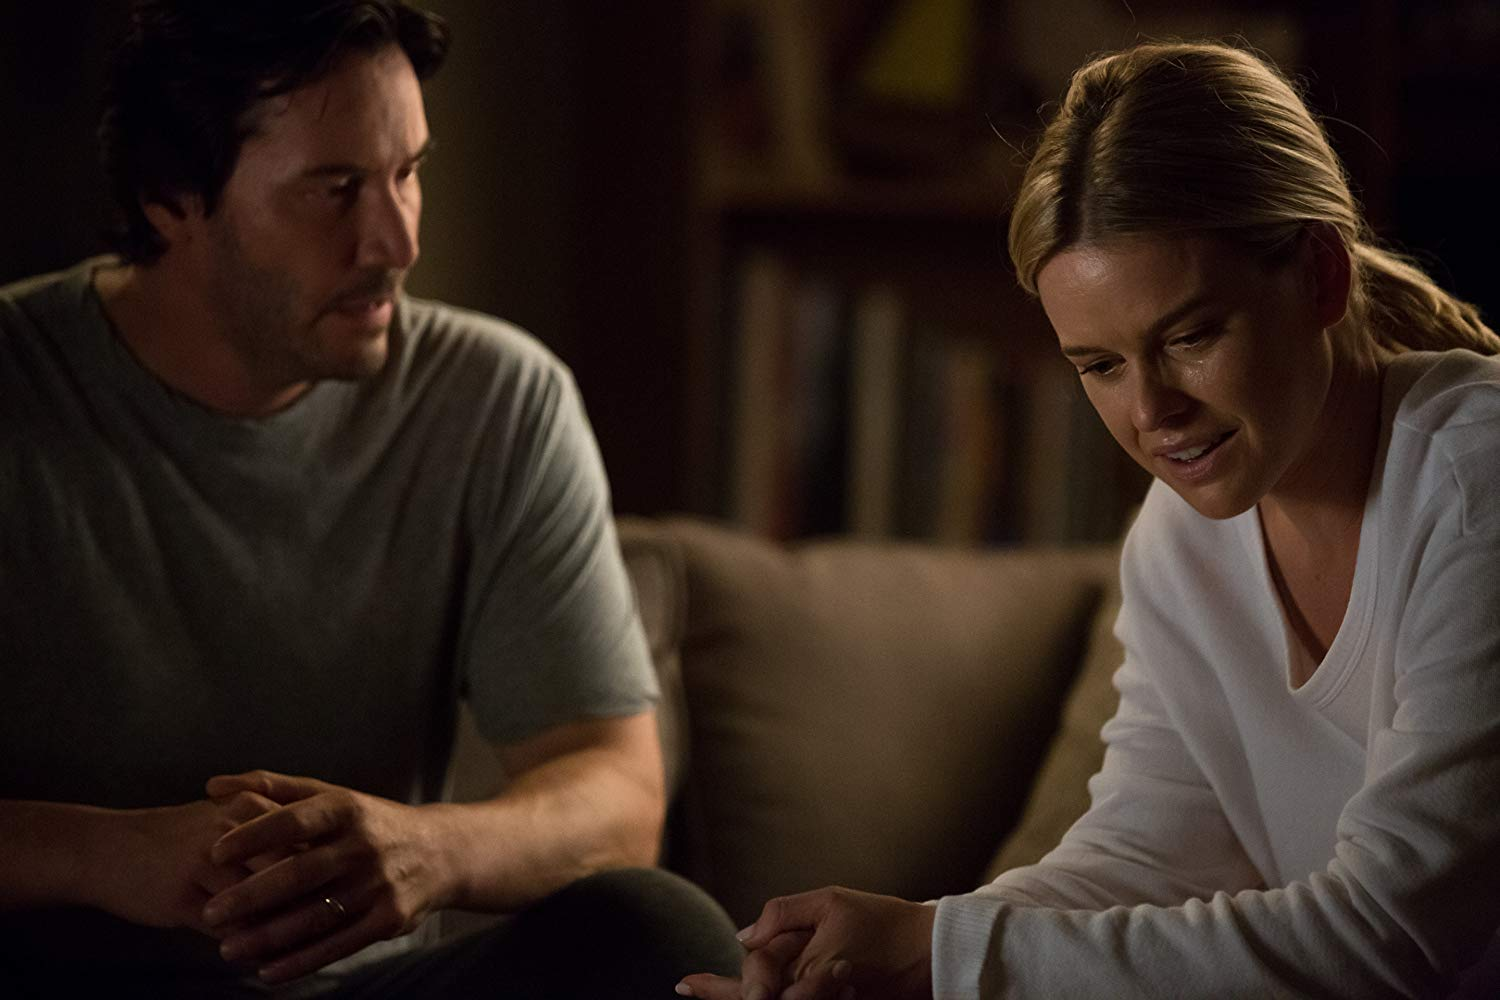 Keanu Reeves and wife Alice Eve in Replicas (2018)